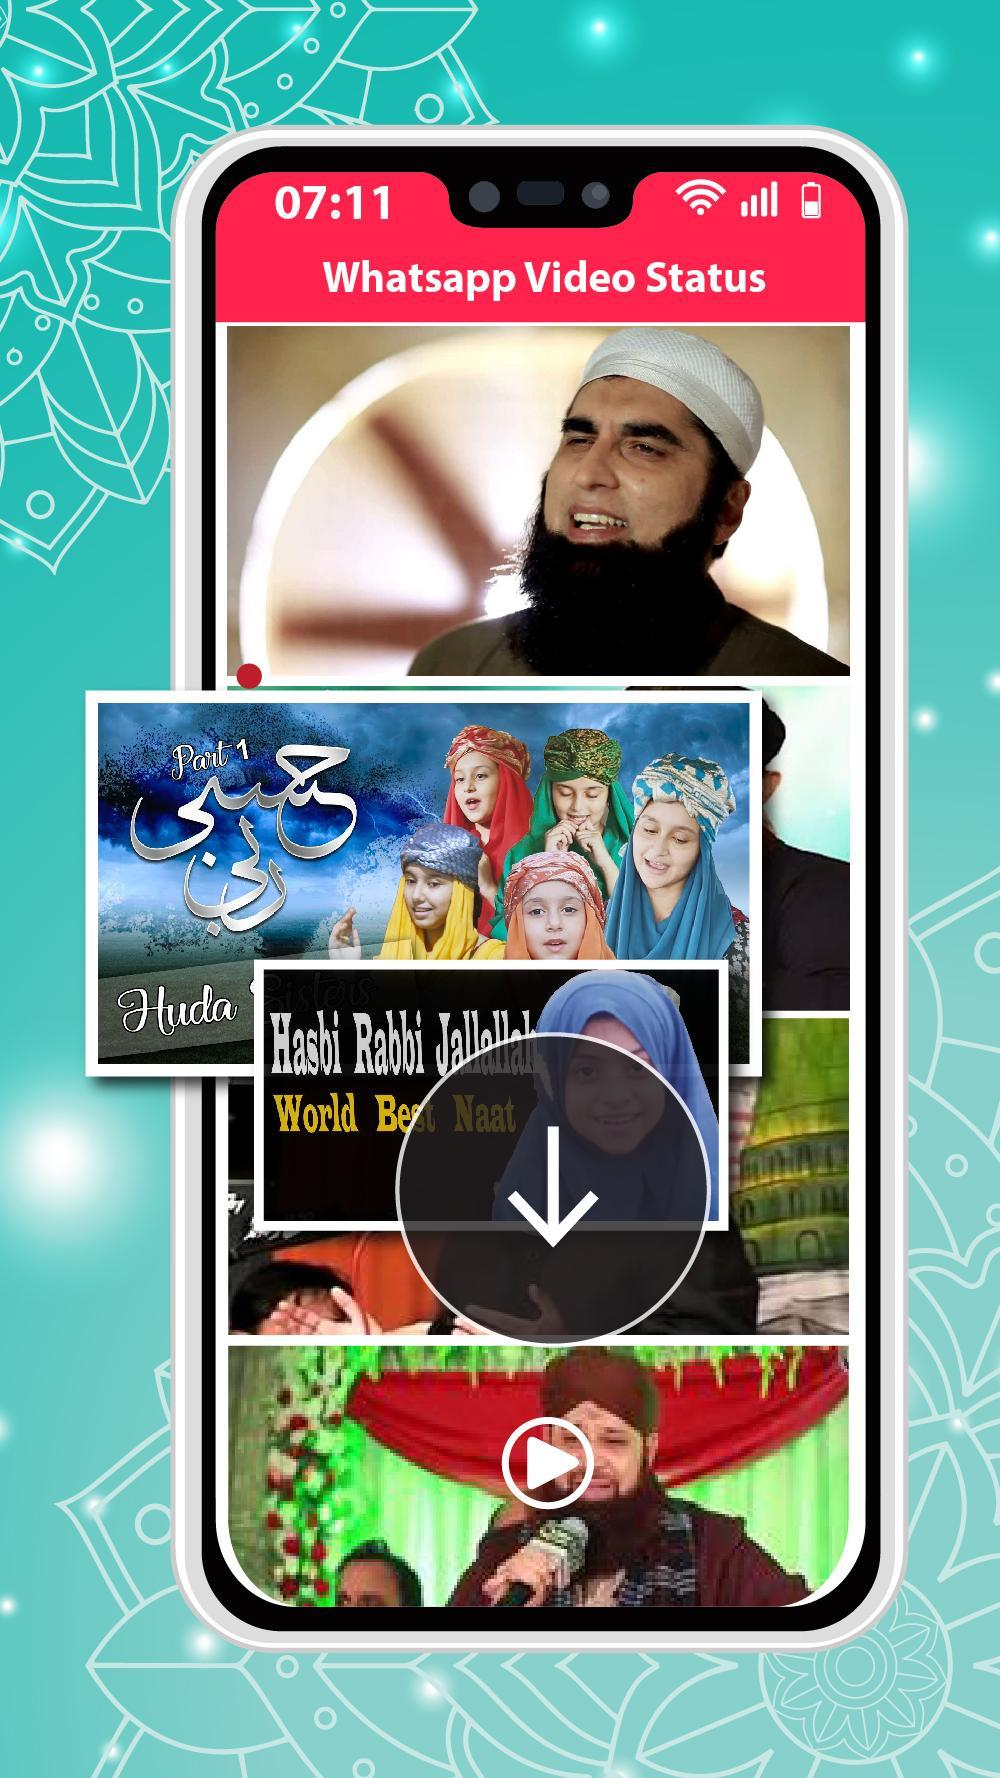 Islamic Naat Whatsapp Video Status For Android Apk Download